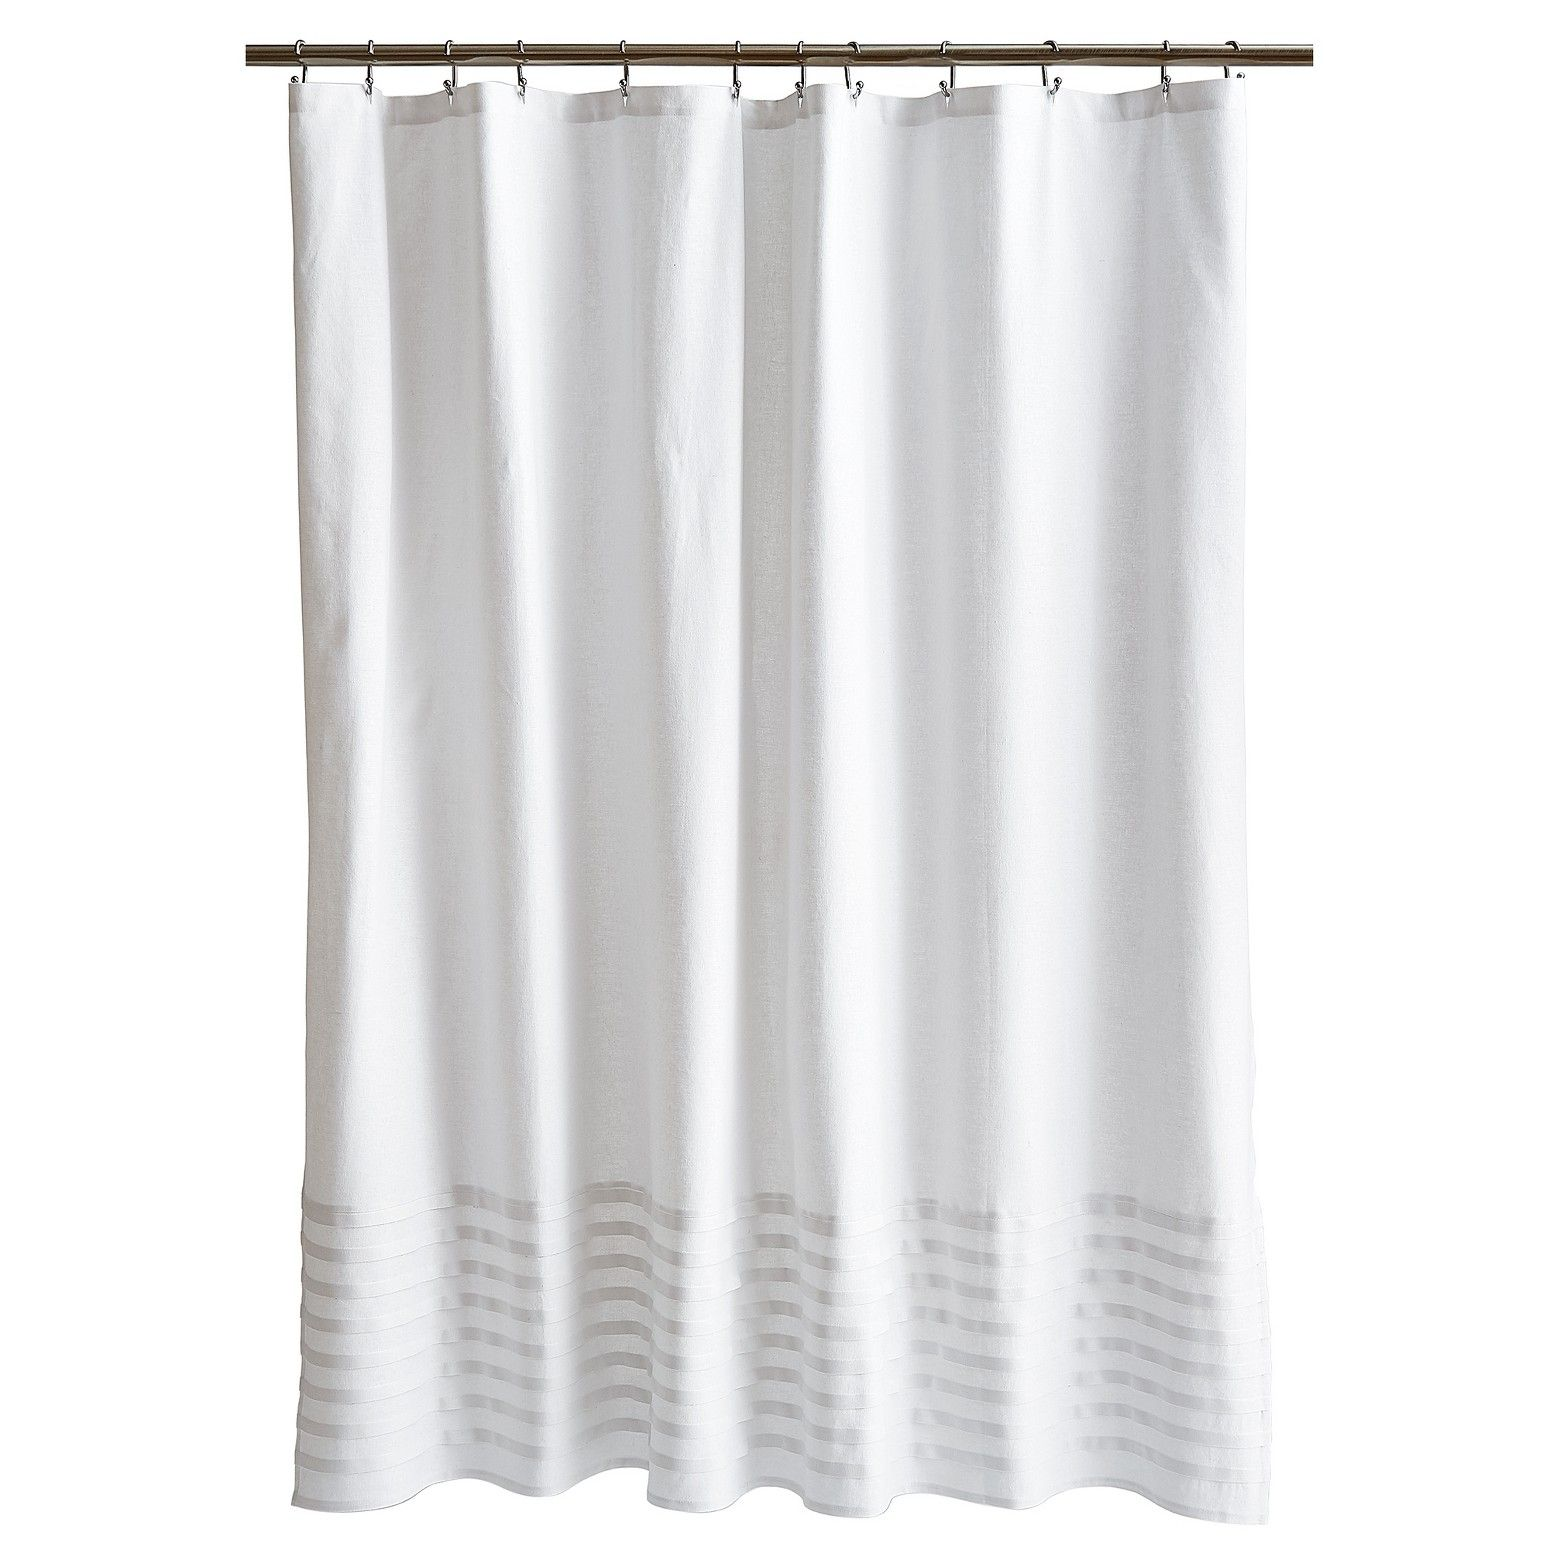 Update Your Bathroom Decor With The Fieldcrest Chelsea Pleat White